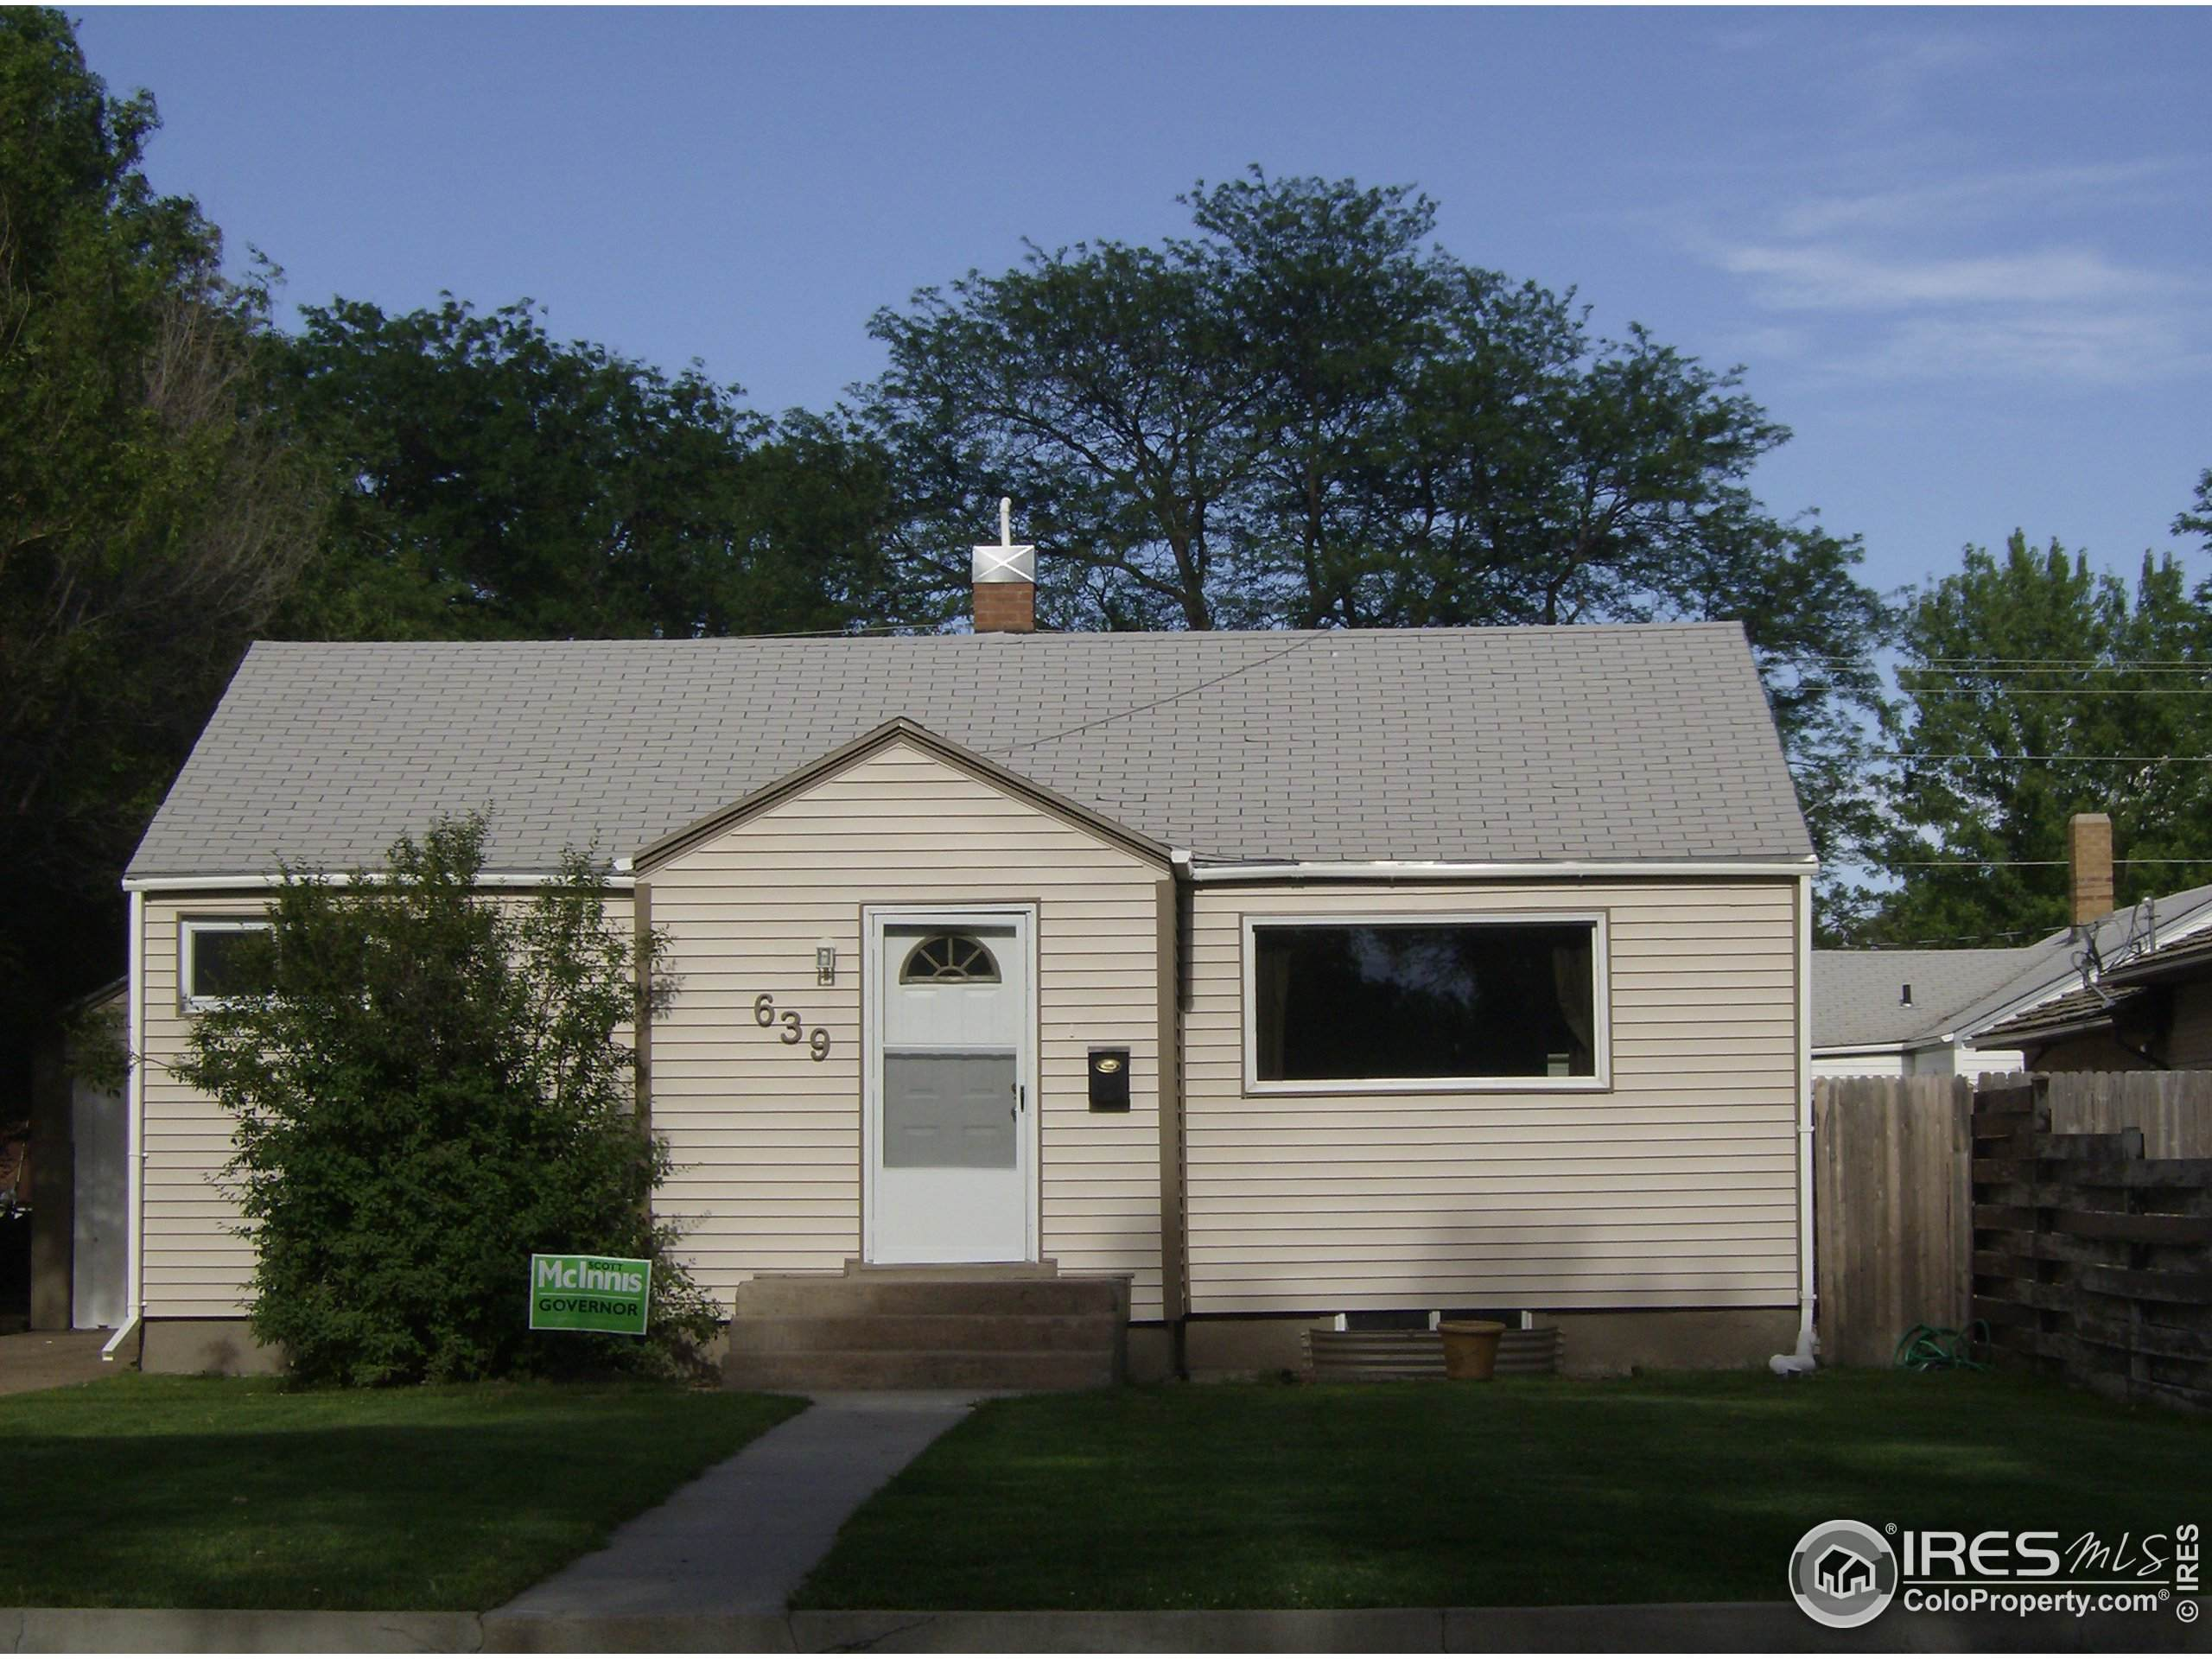 268 Hillspire Dr, Windsor, CO 80550 (MLS #933928) :: Wheelhouse Realty